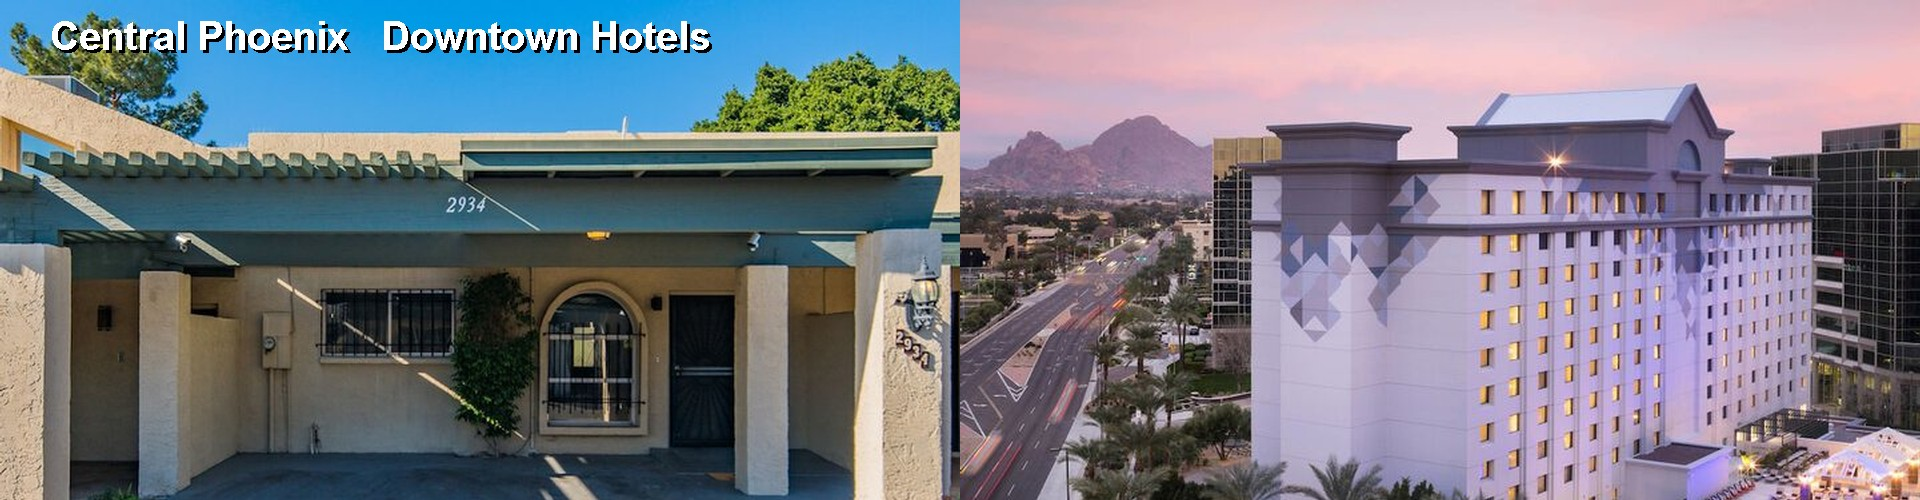 5 Best Hotels near Central Phoenix Downtown